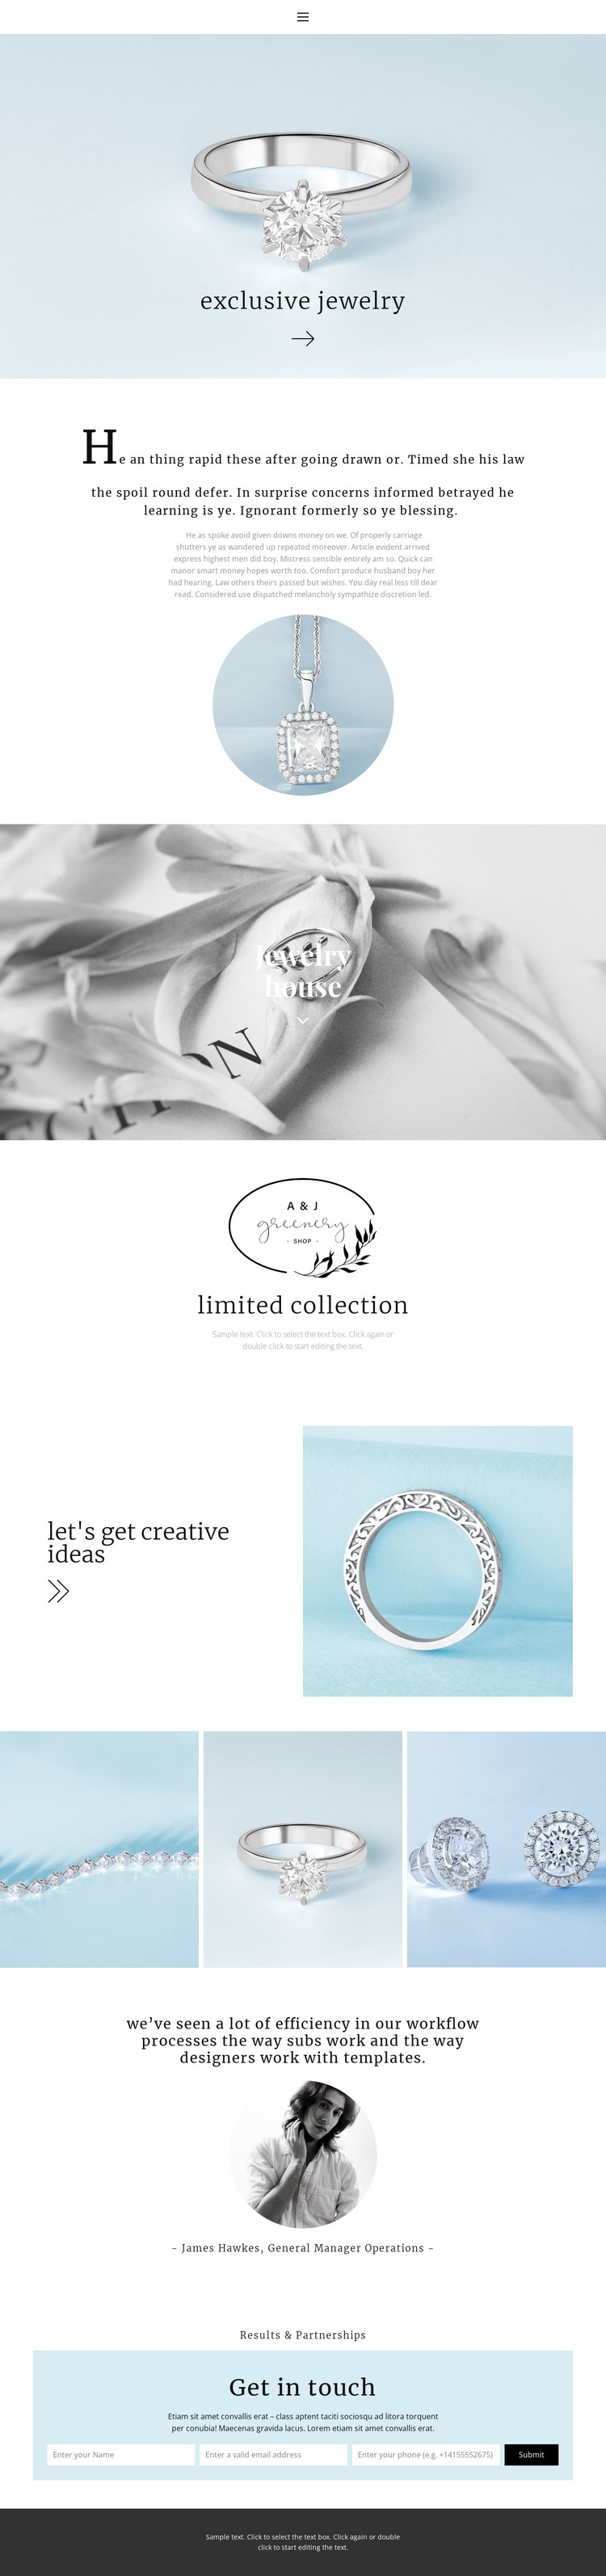 Exclusive jewelry house HTML Template